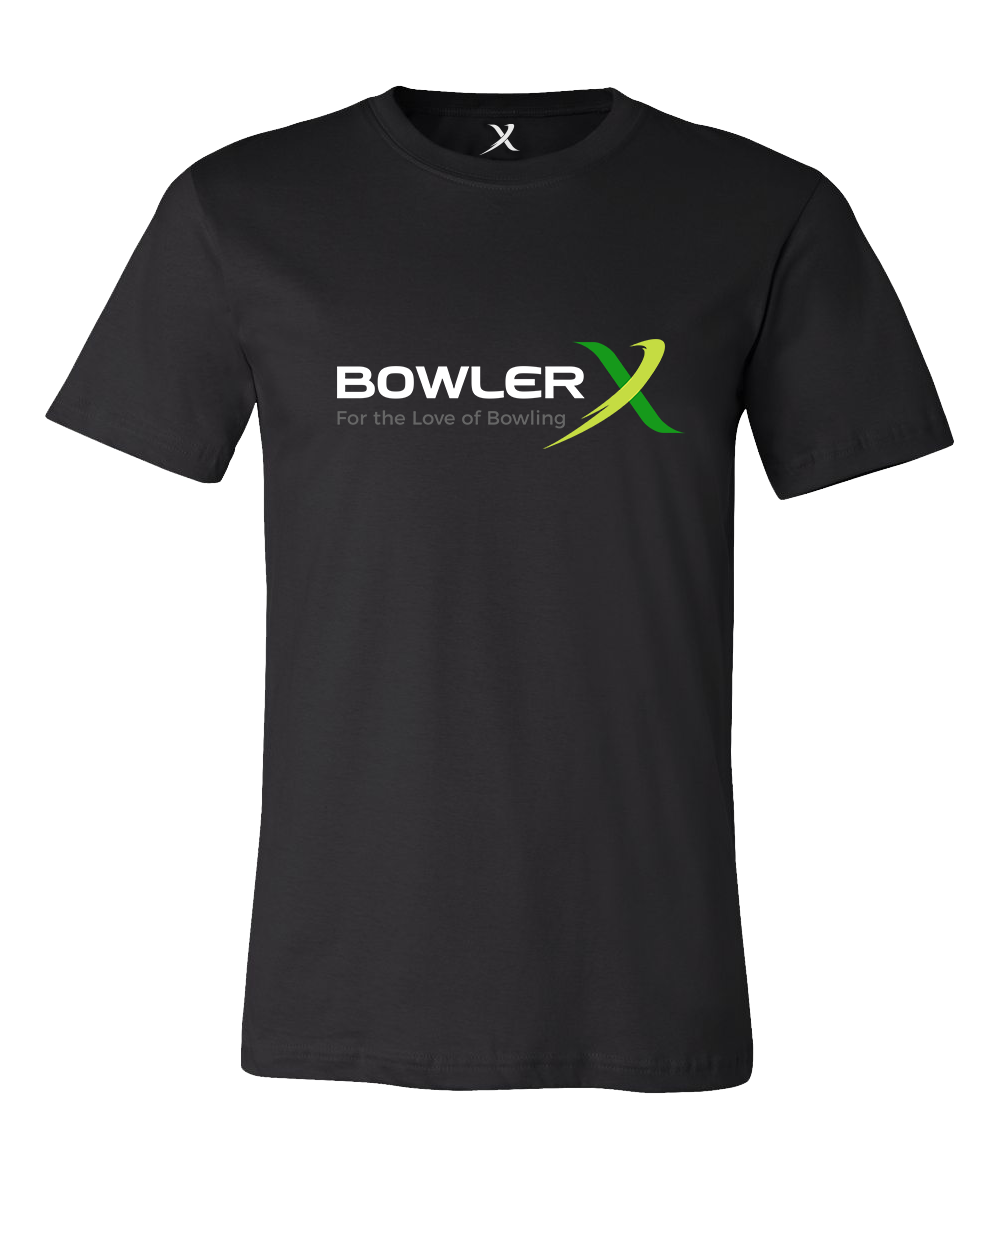 bowlerx for the love of bowling shirt